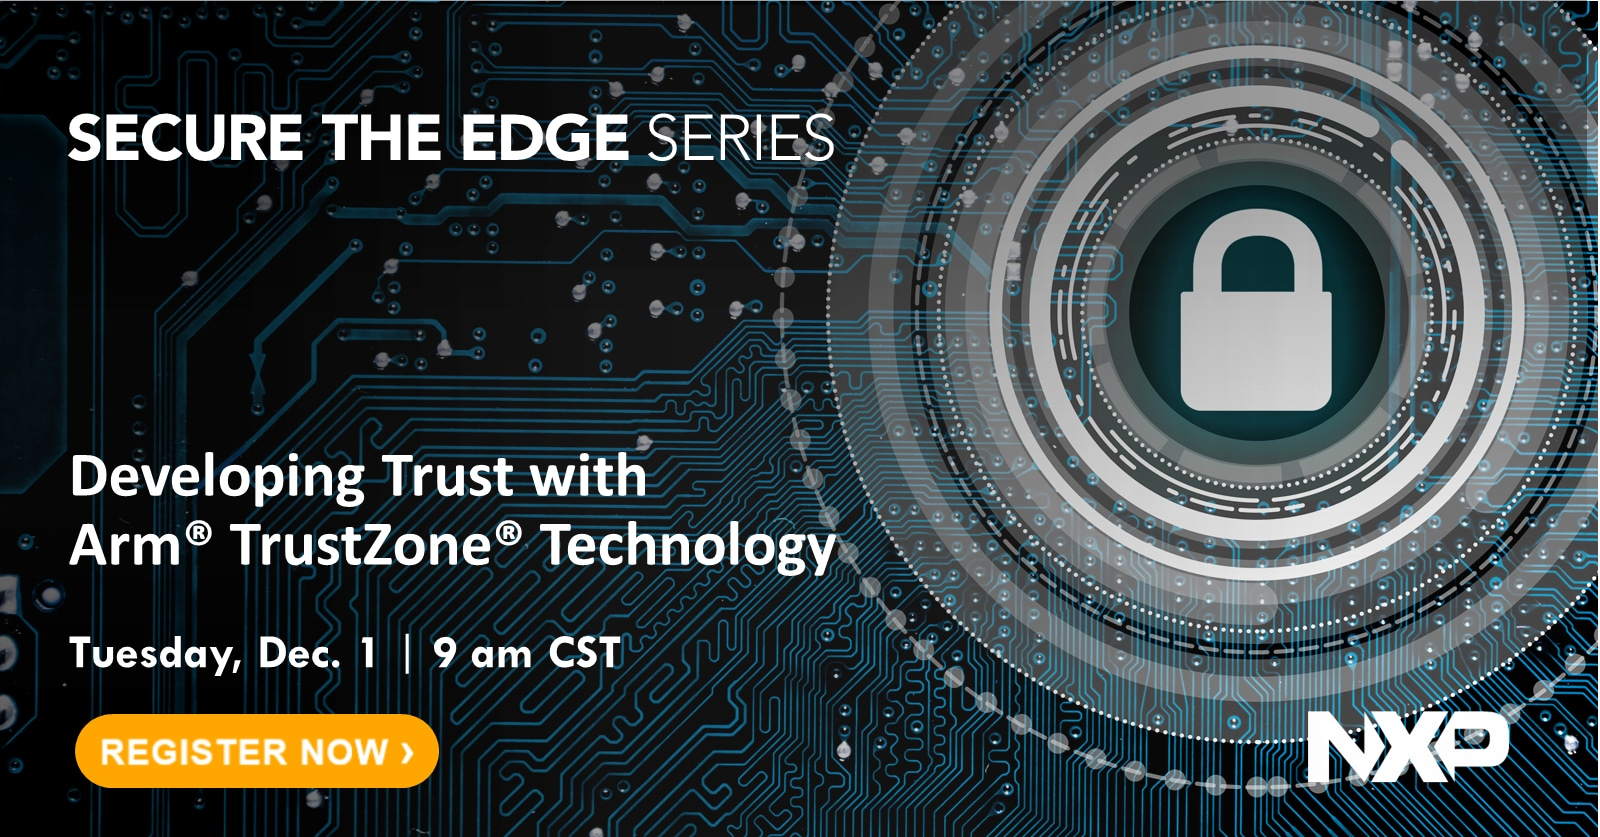 Secure the Edge: Developing Trust with Arm TrustZone Technology